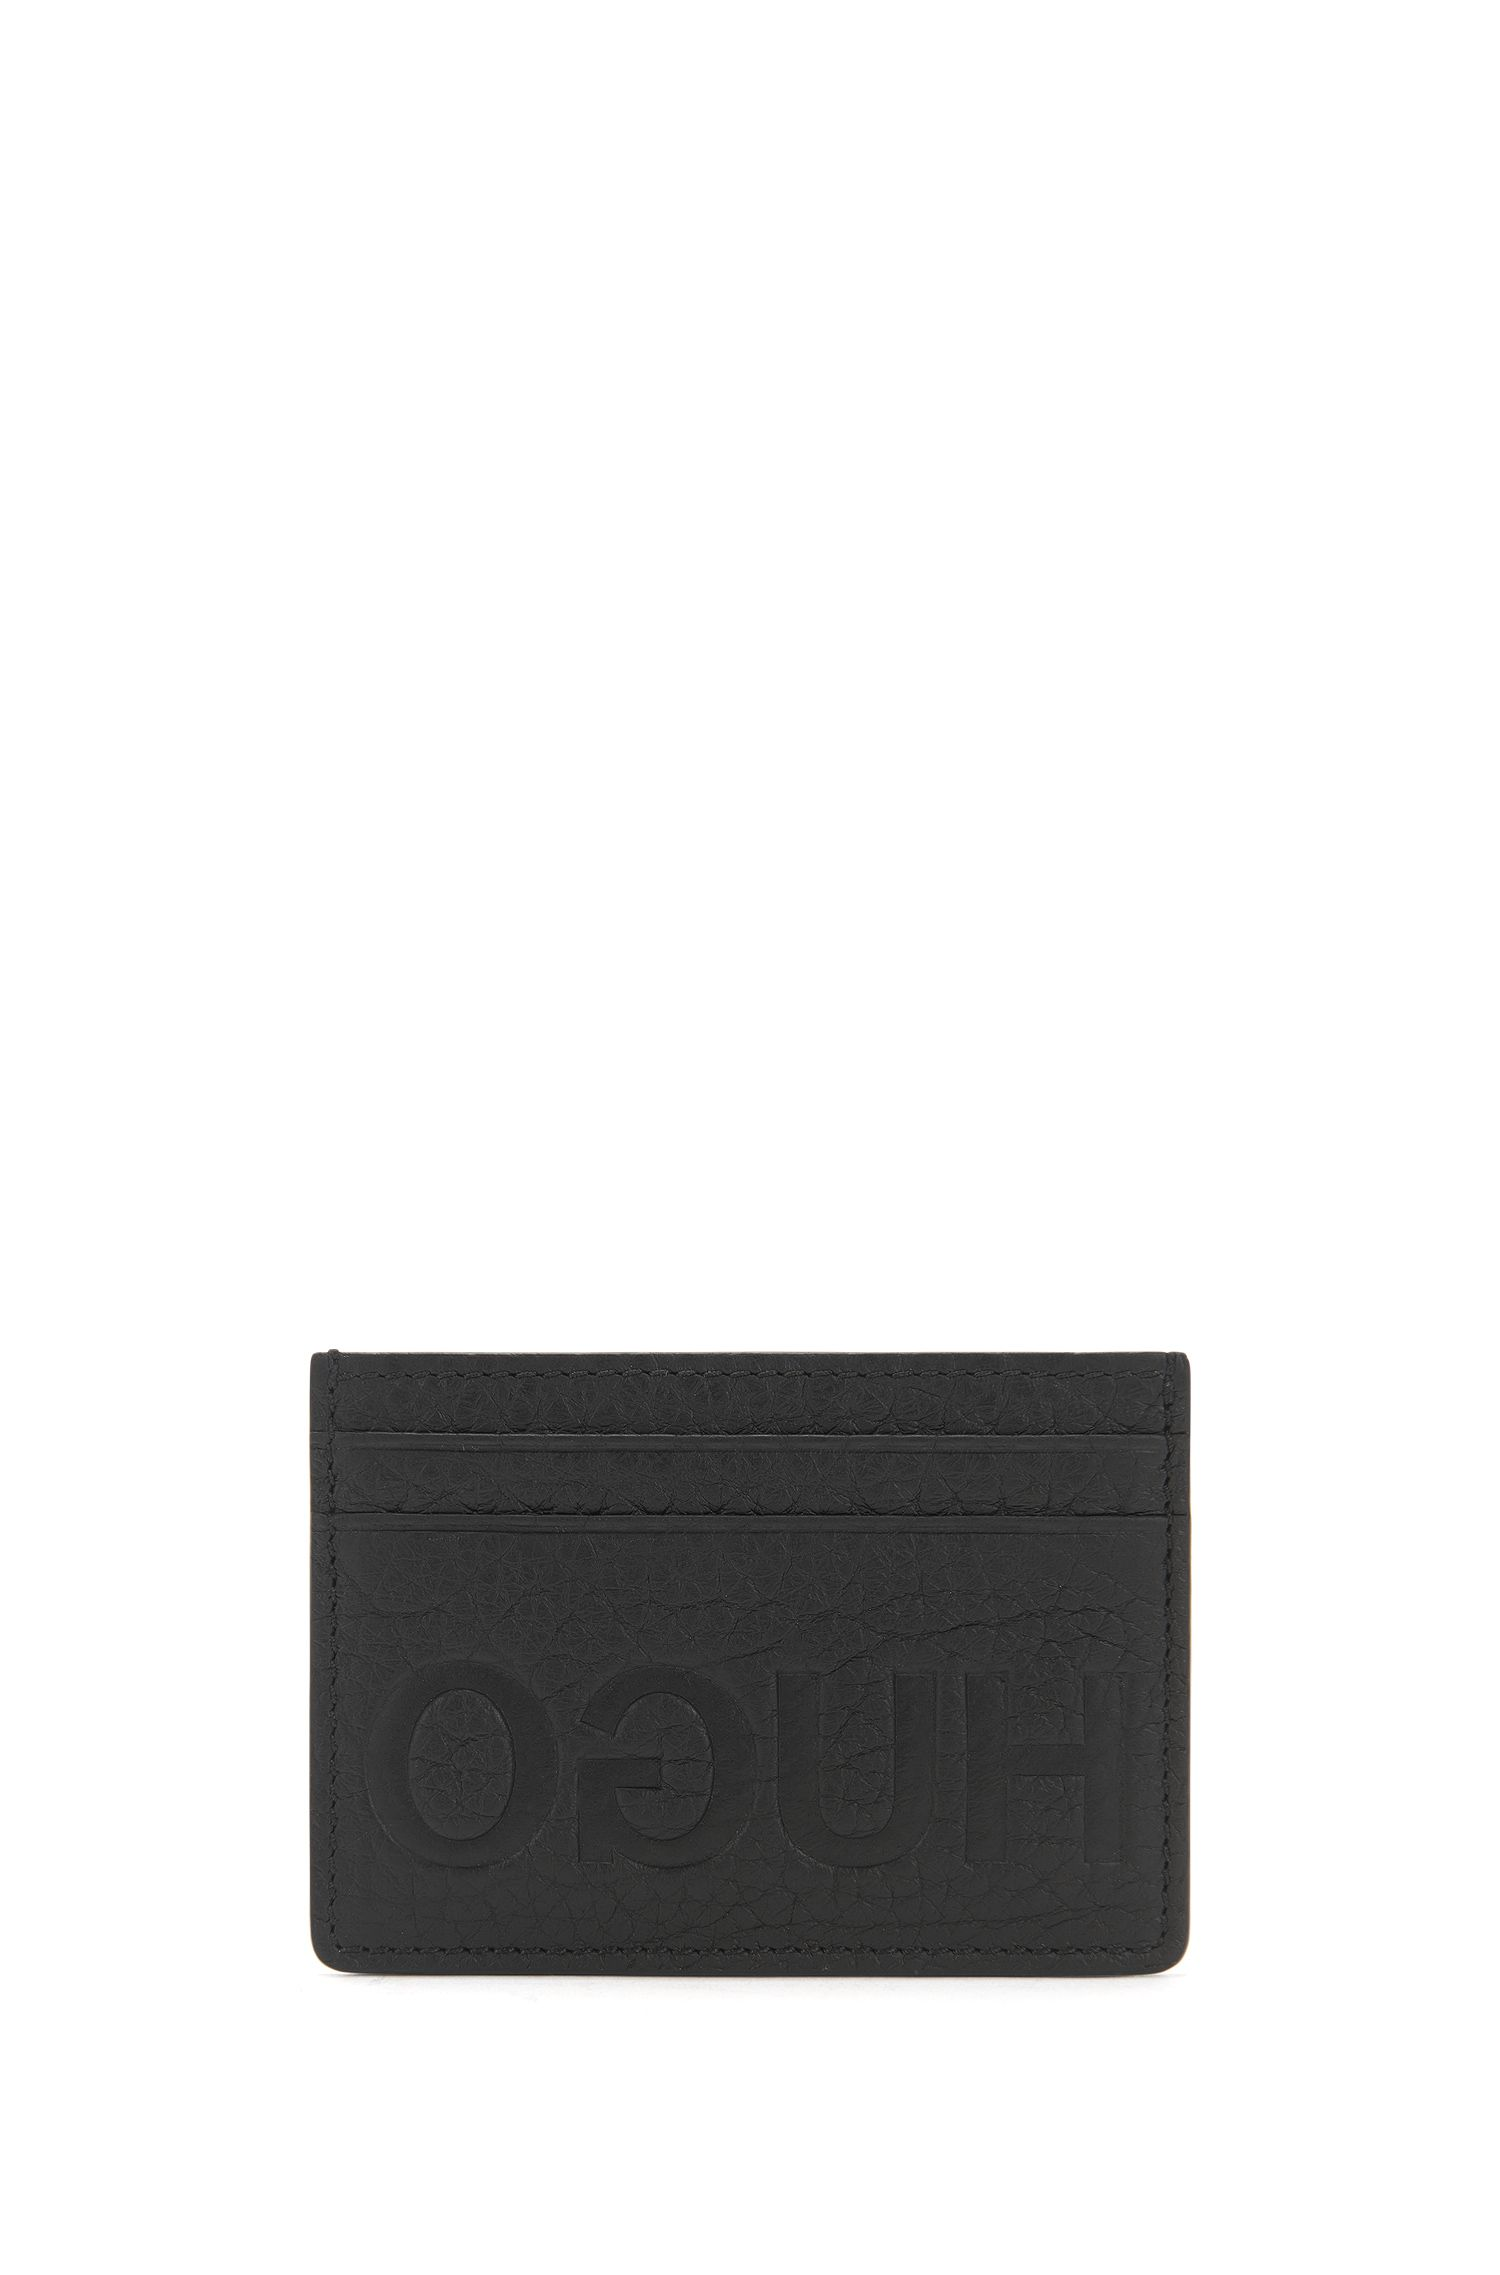 Full-Grain Leather Card Holder | Victorian L S Card, Black